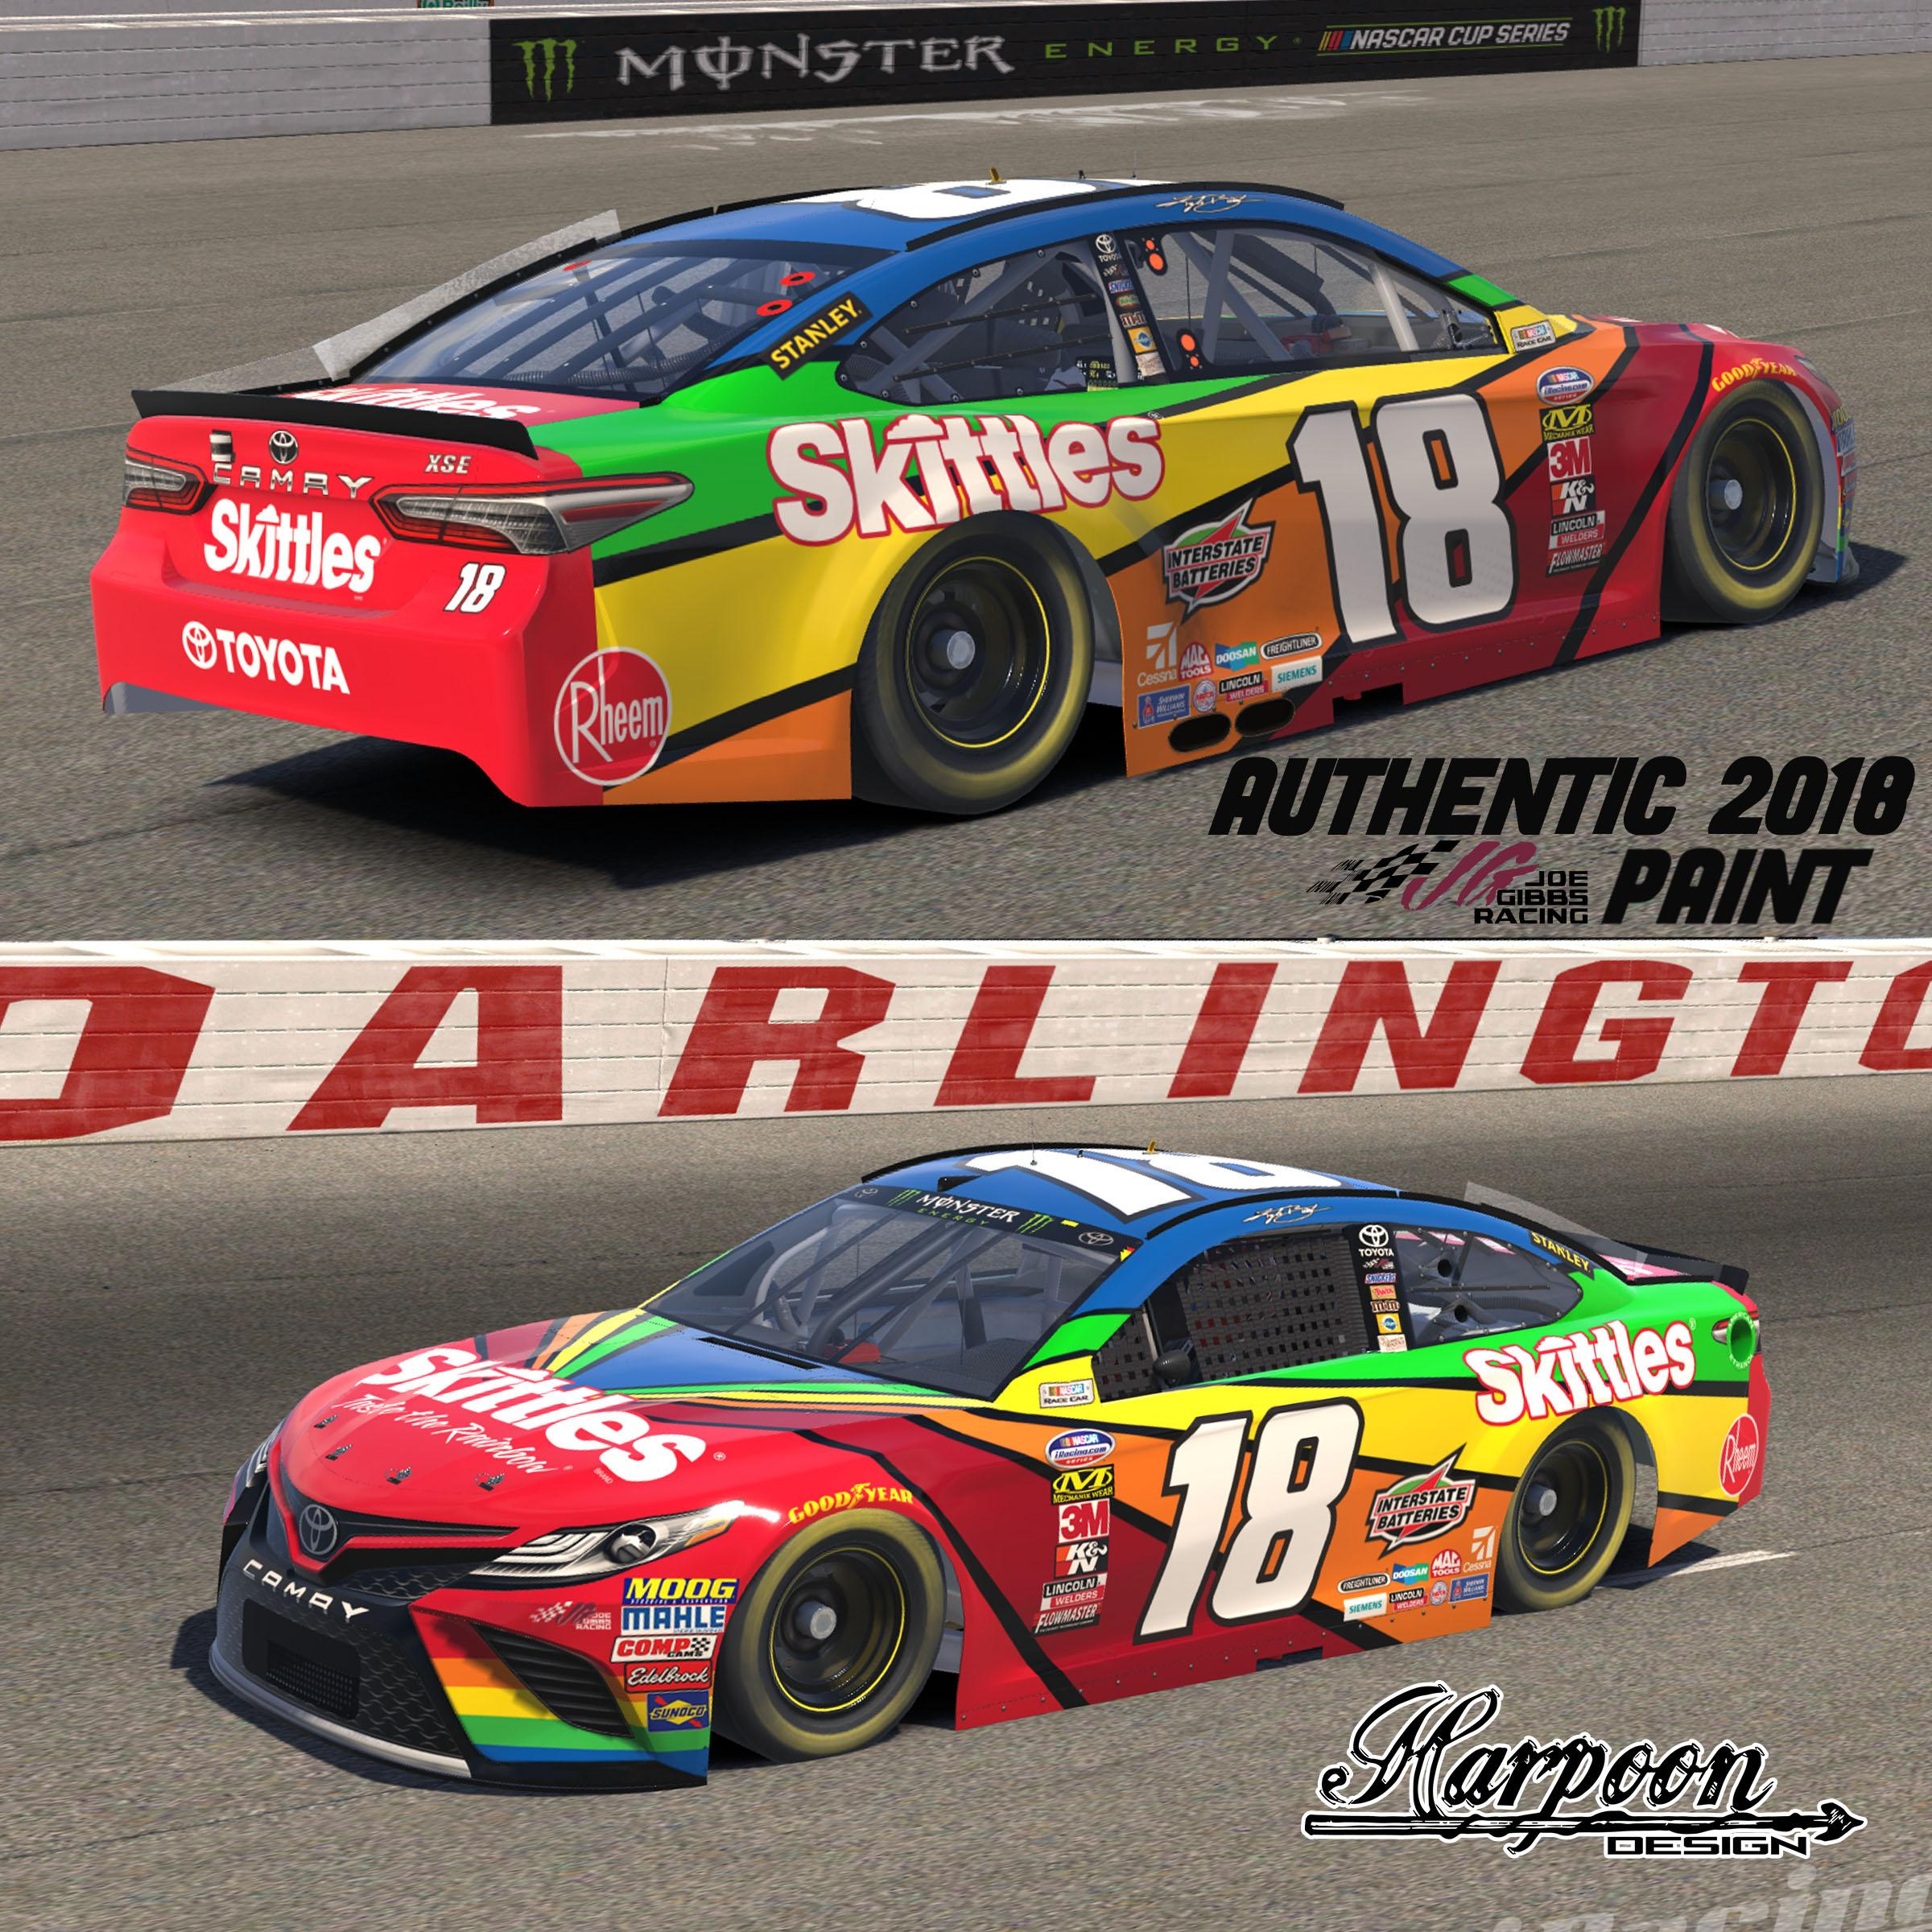 Preview of 2018 JGR Authentic Kyle Busch Skittles Throwback Camry by Brantley Roden